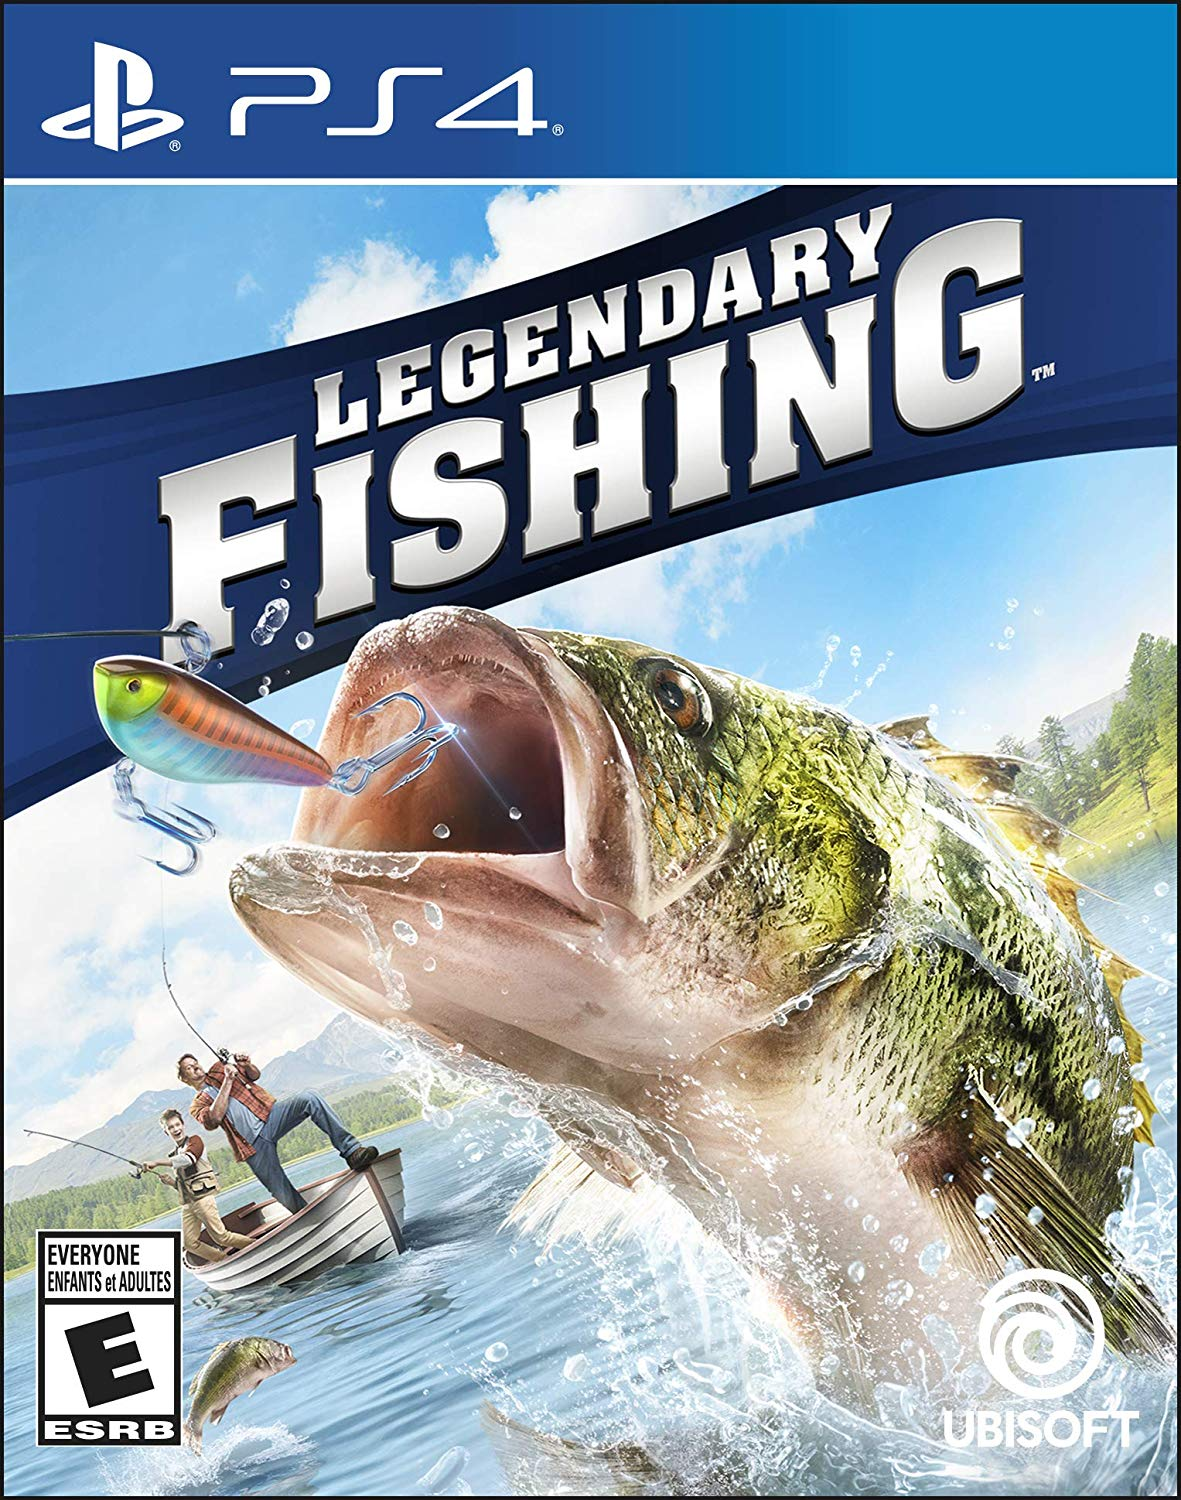 PS4 Legendary Fishing (PlayStation 4)